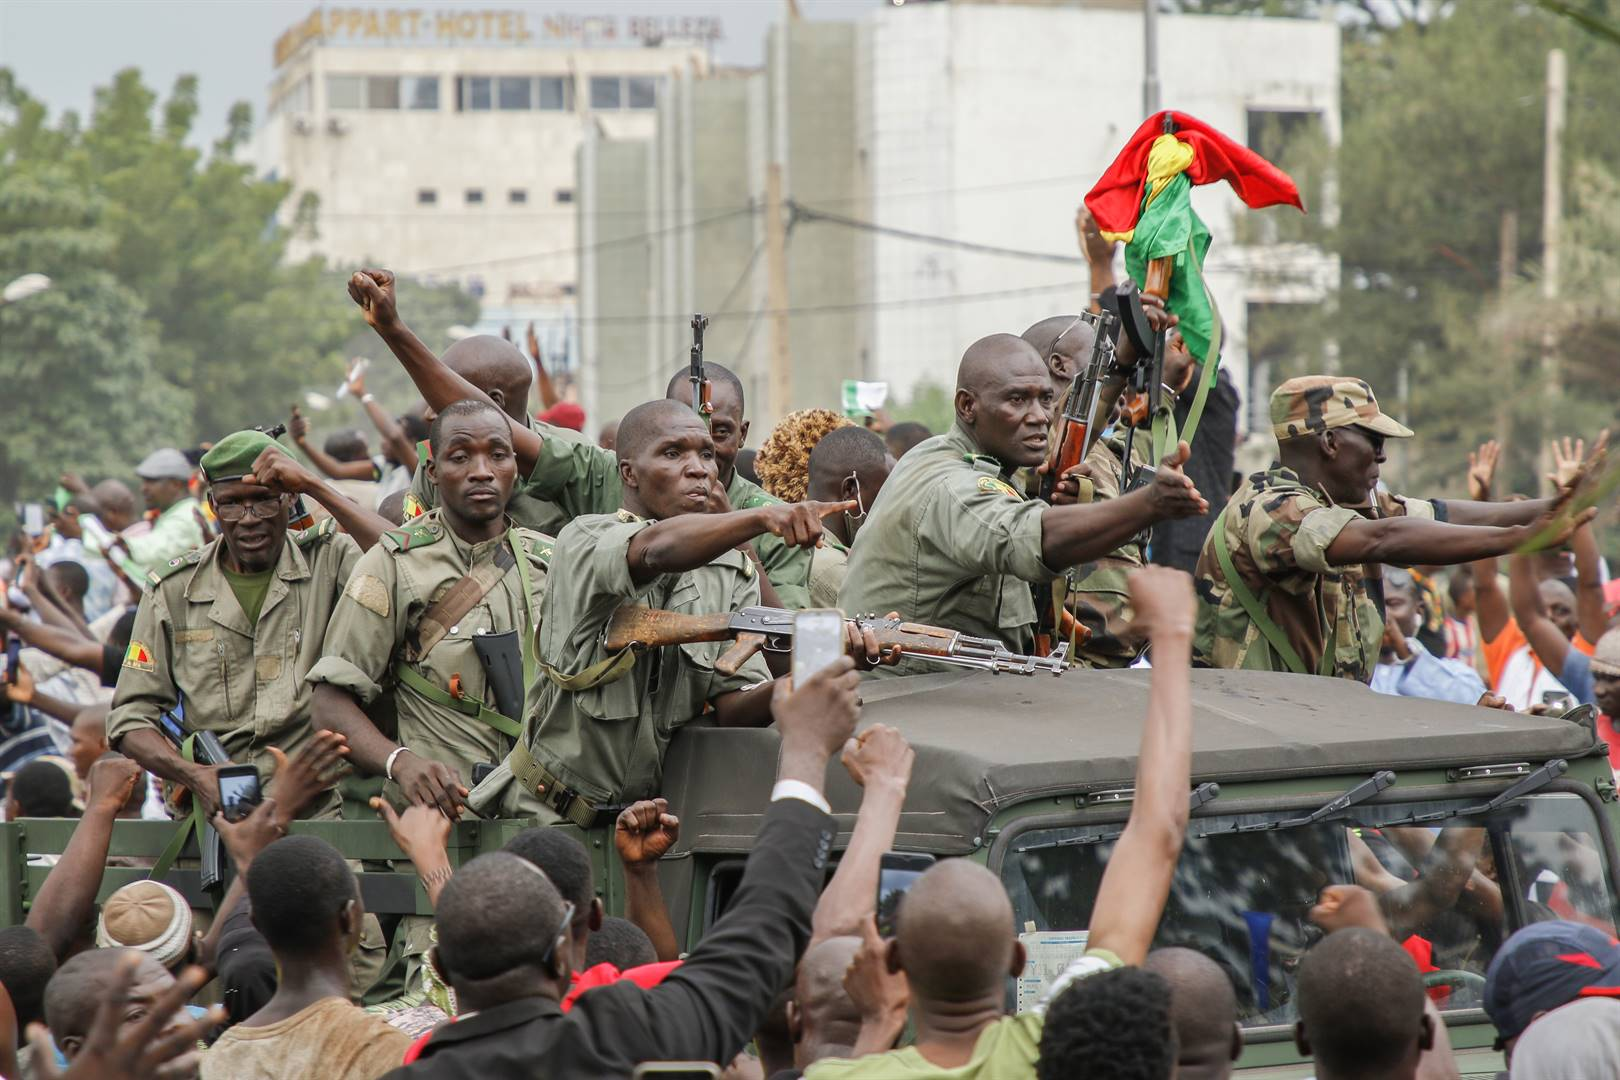 Hundreds of anti-government protesters gather in Bamako to applaud the soldiers for their actions against President Ibrahim Boubacar Keita